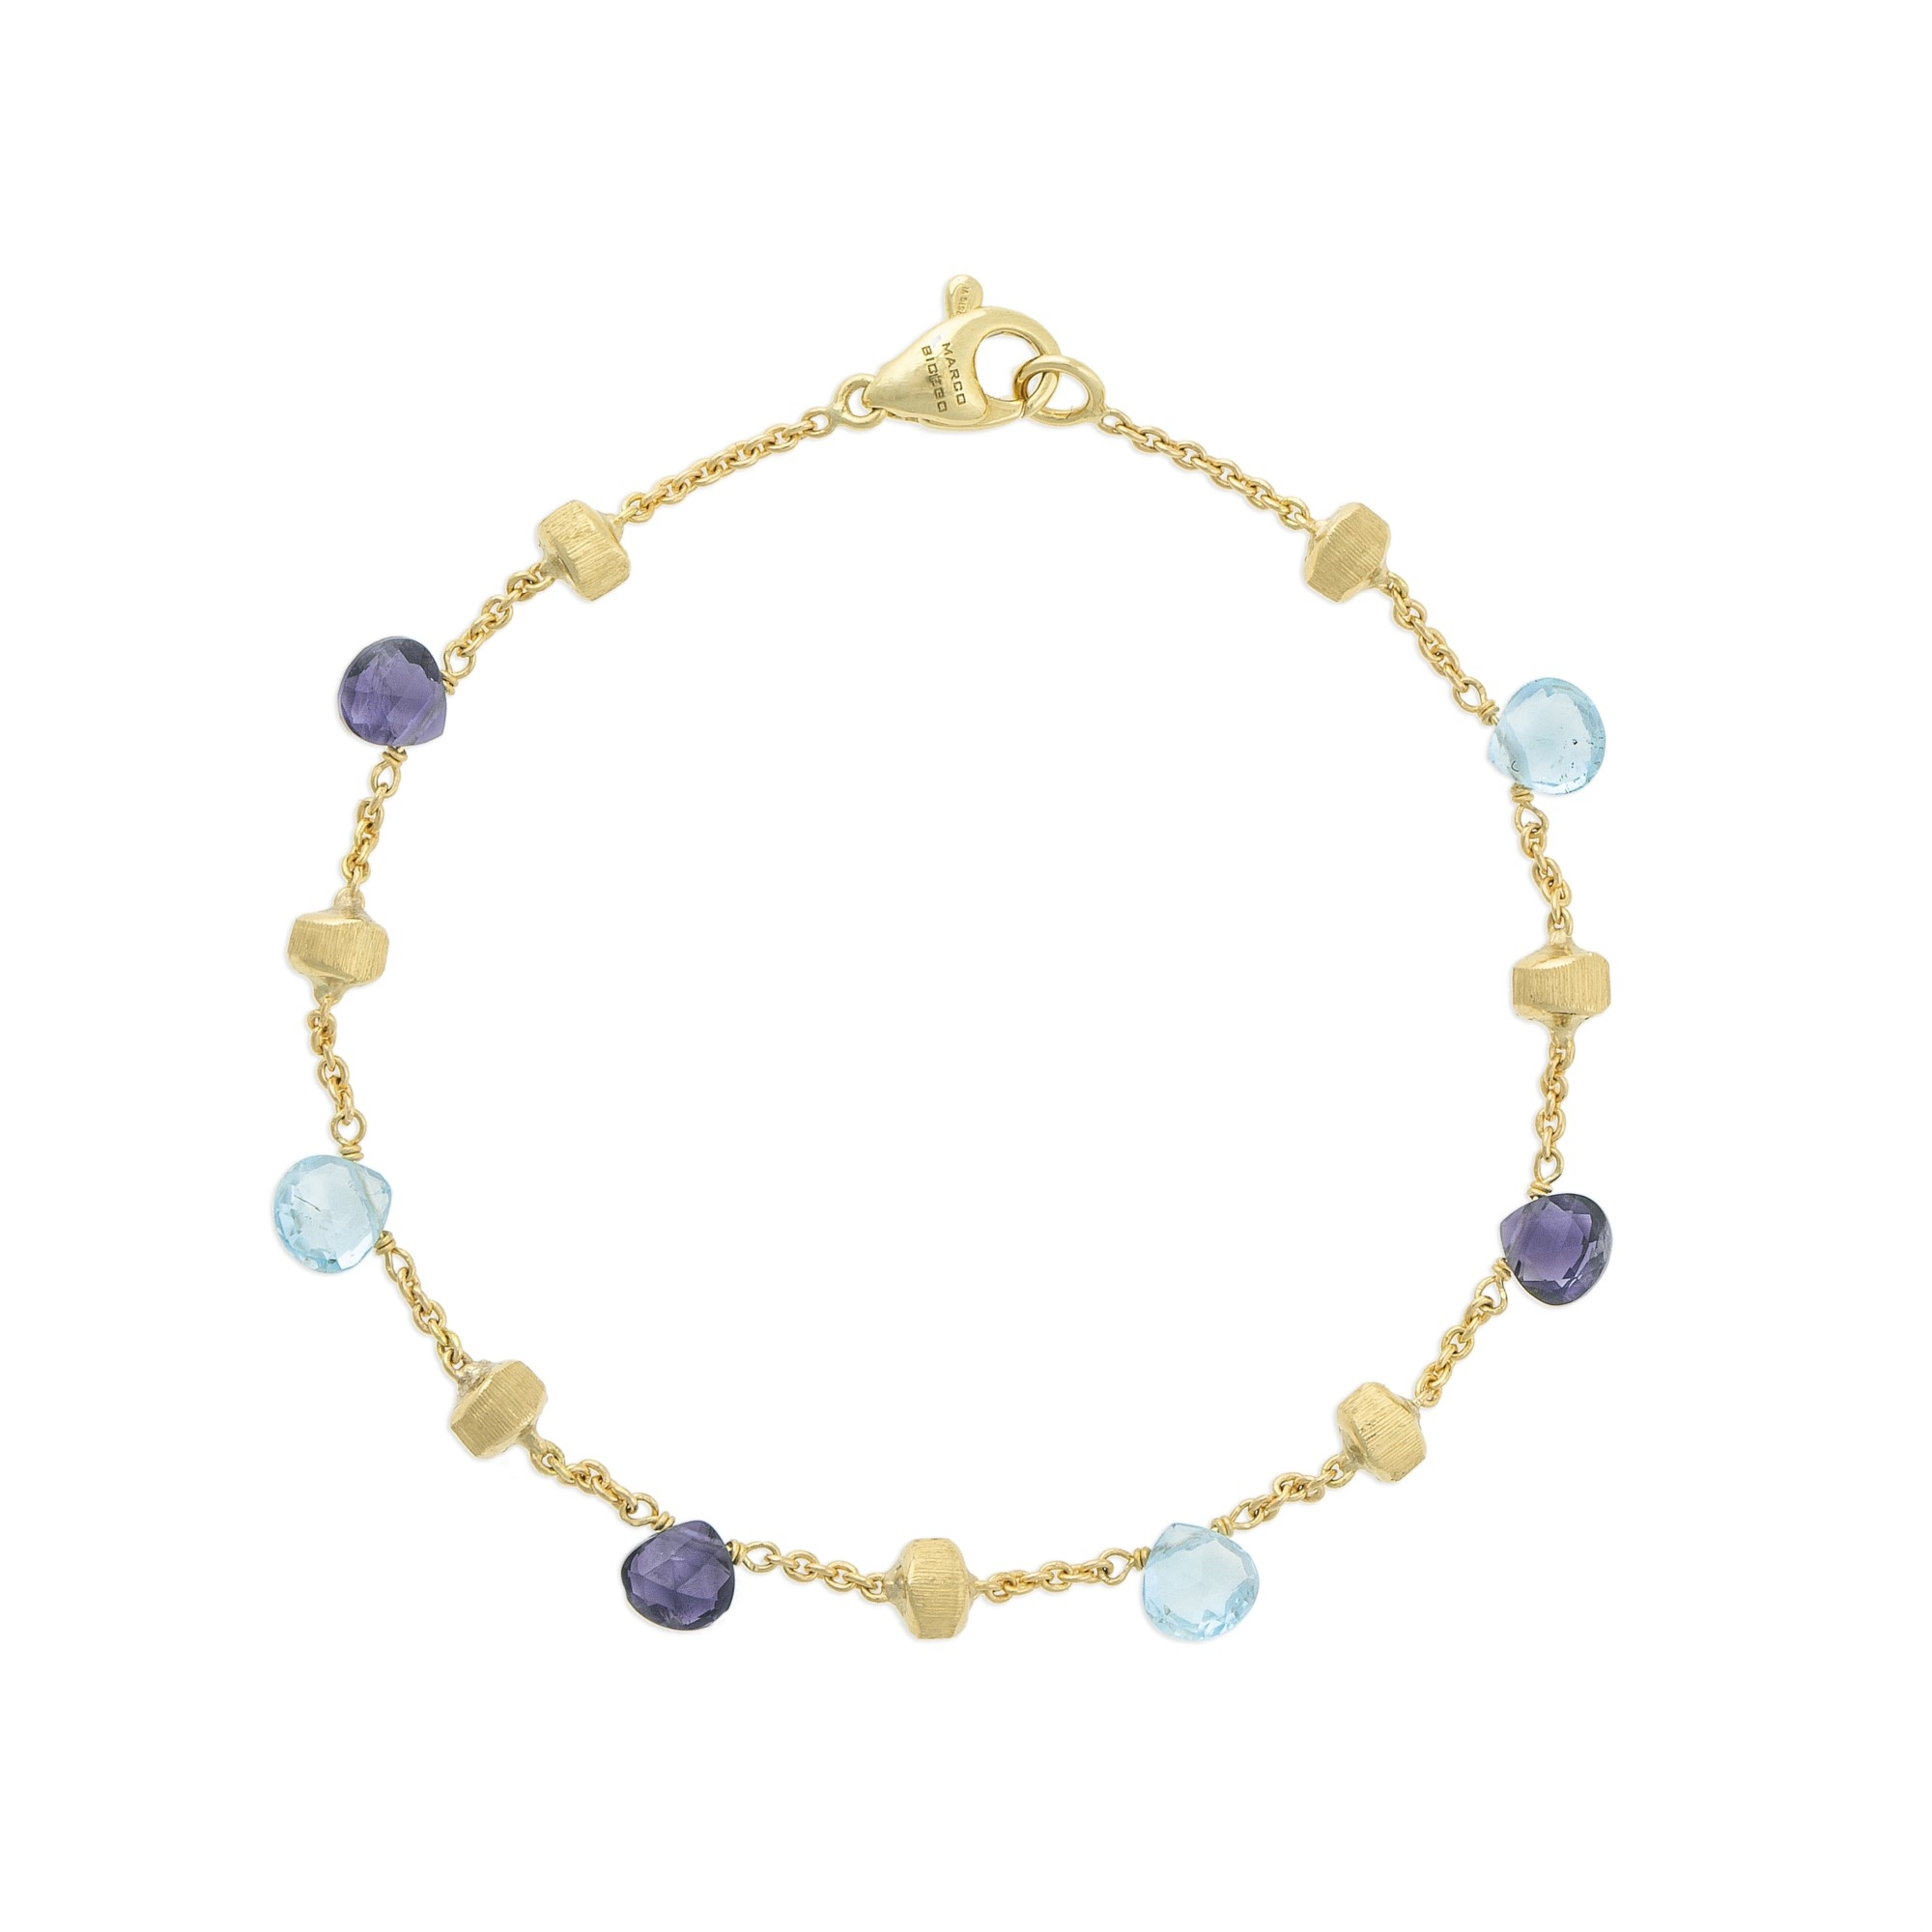 Marco Bicego 18K Yellow Gold  Blue Topaz Gold Bangle with Stones BB765 MIX240 Y